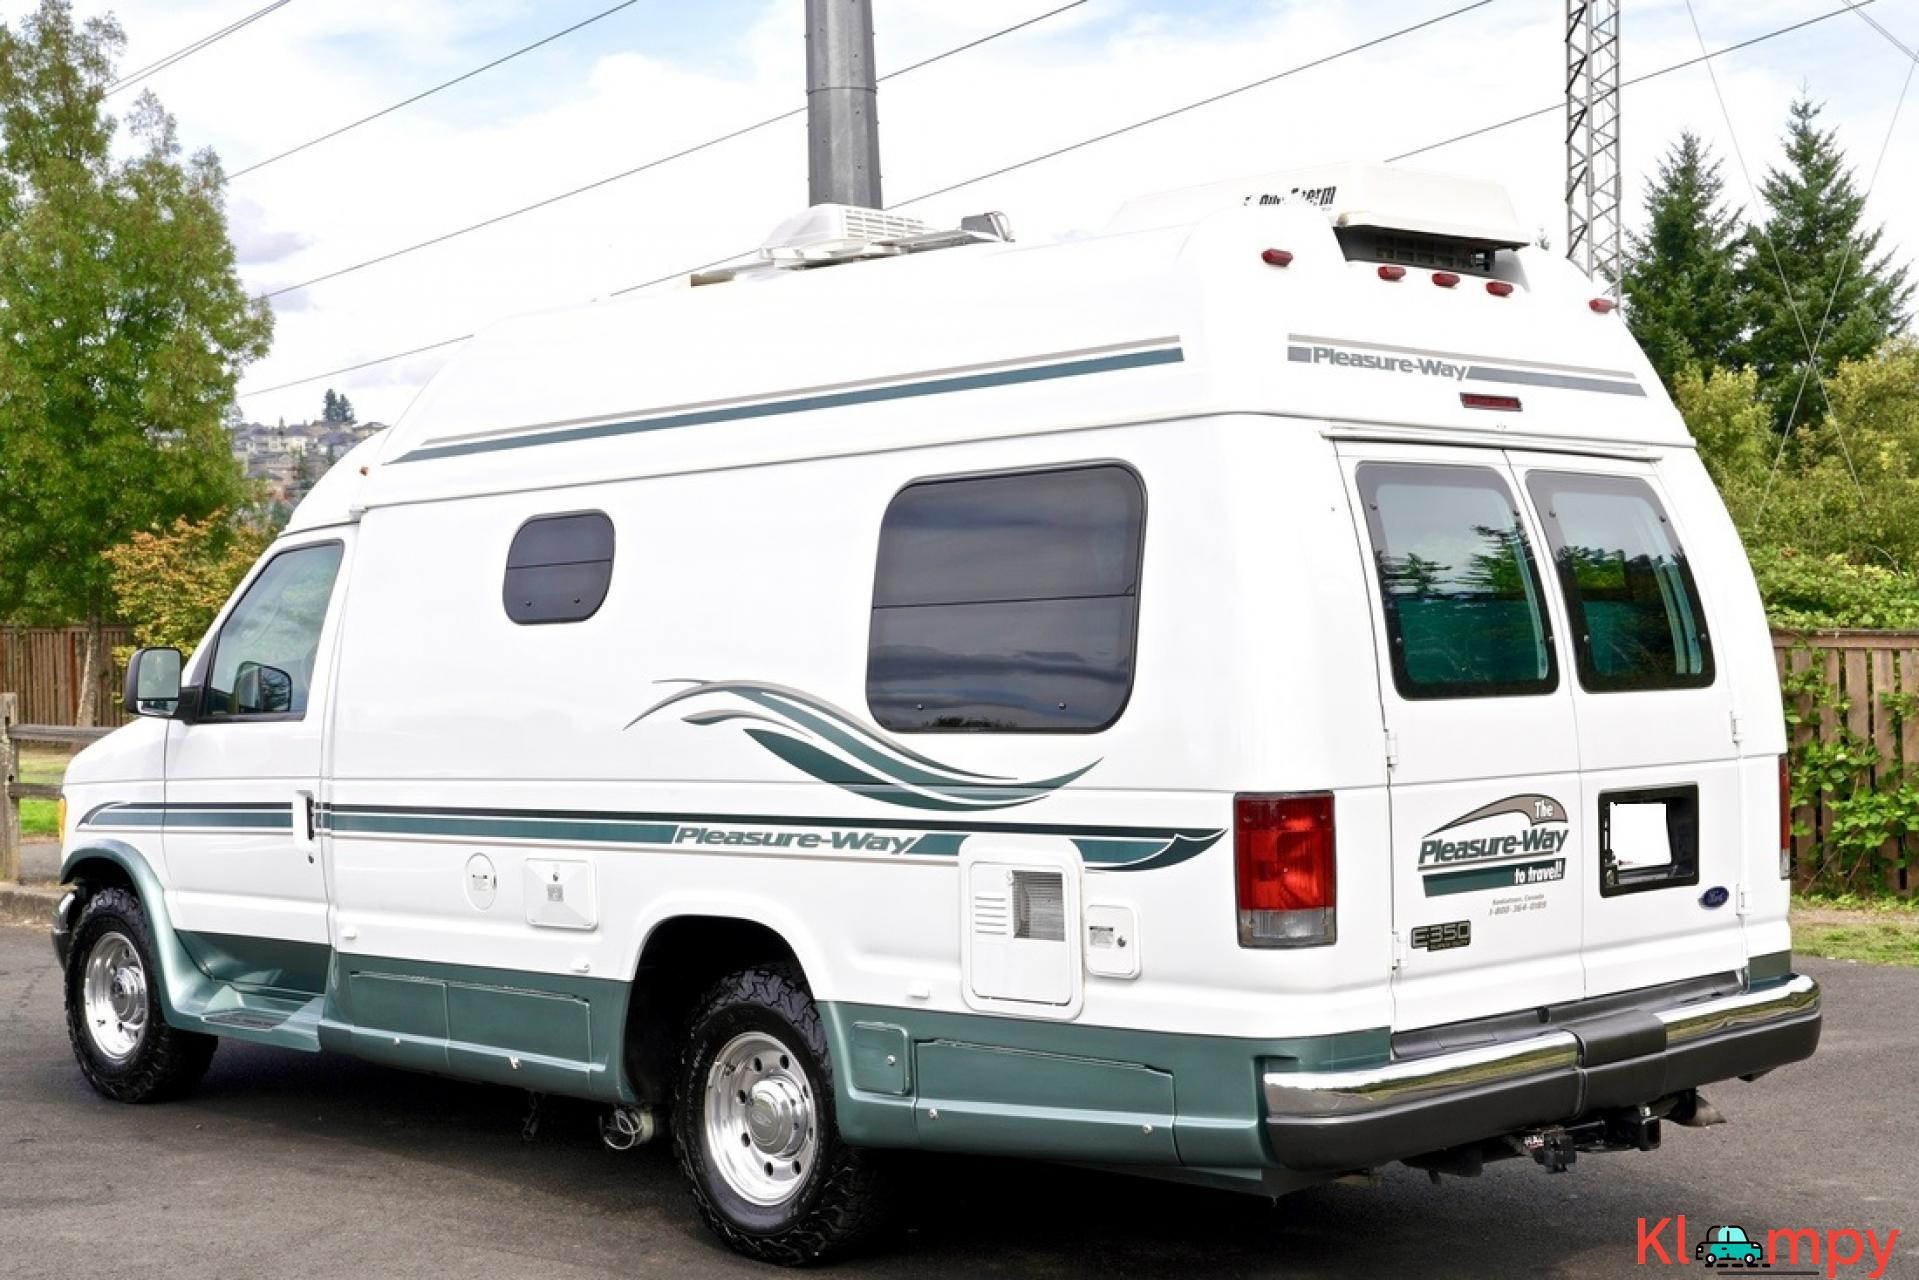 2004 Pleasure-Way Excel 20' Class B - 4/23